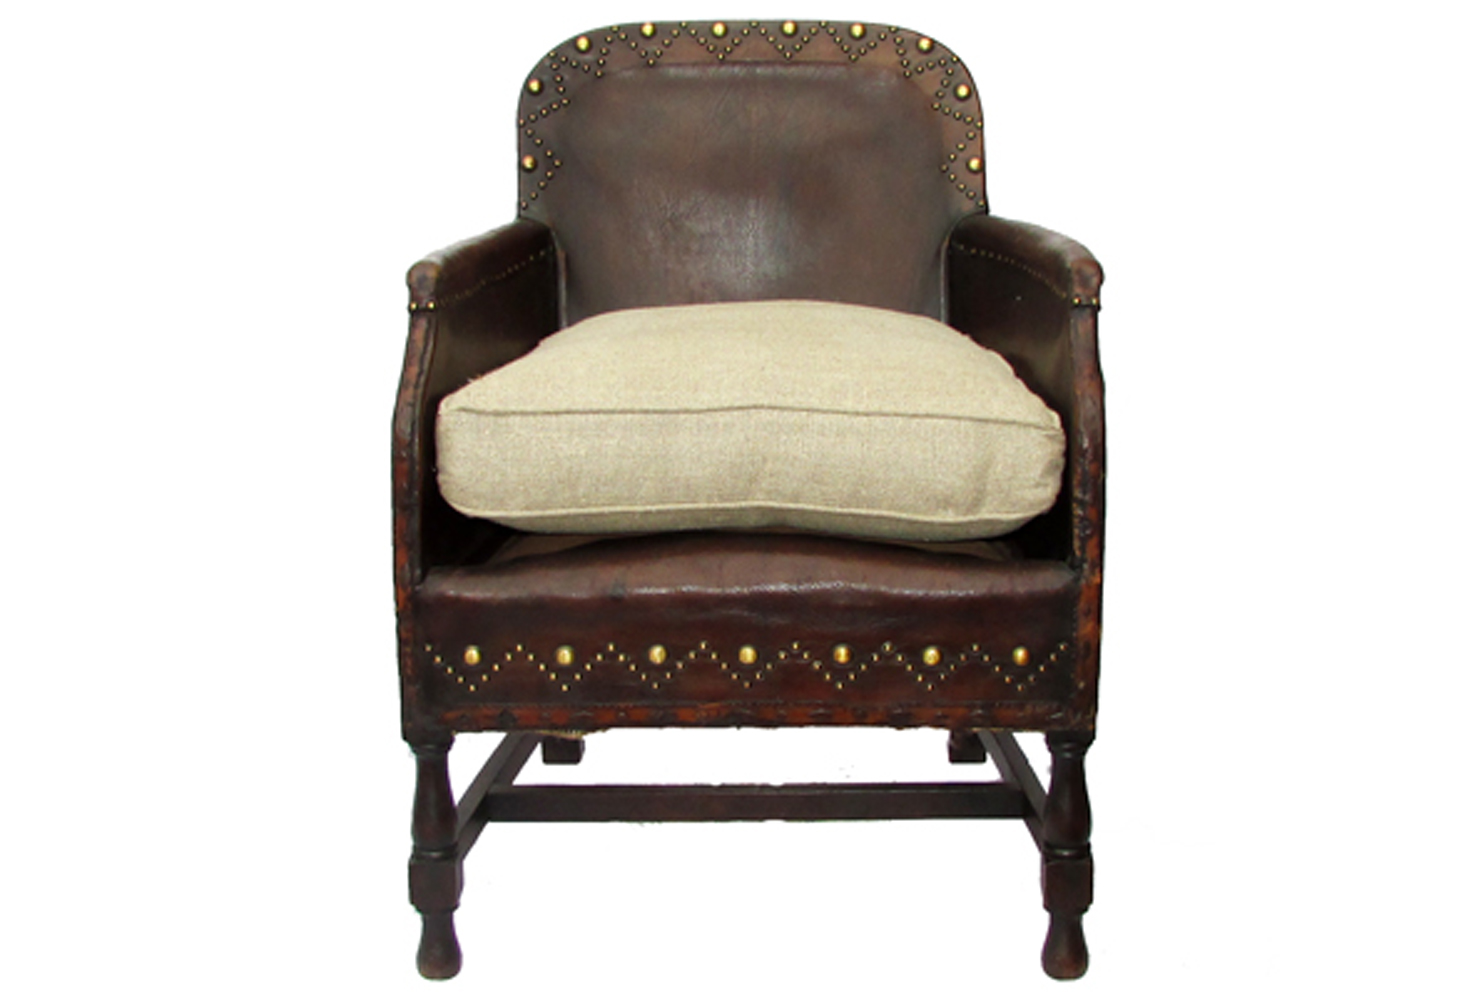 Antique english leather studded chair omero home for Antique leather chairs